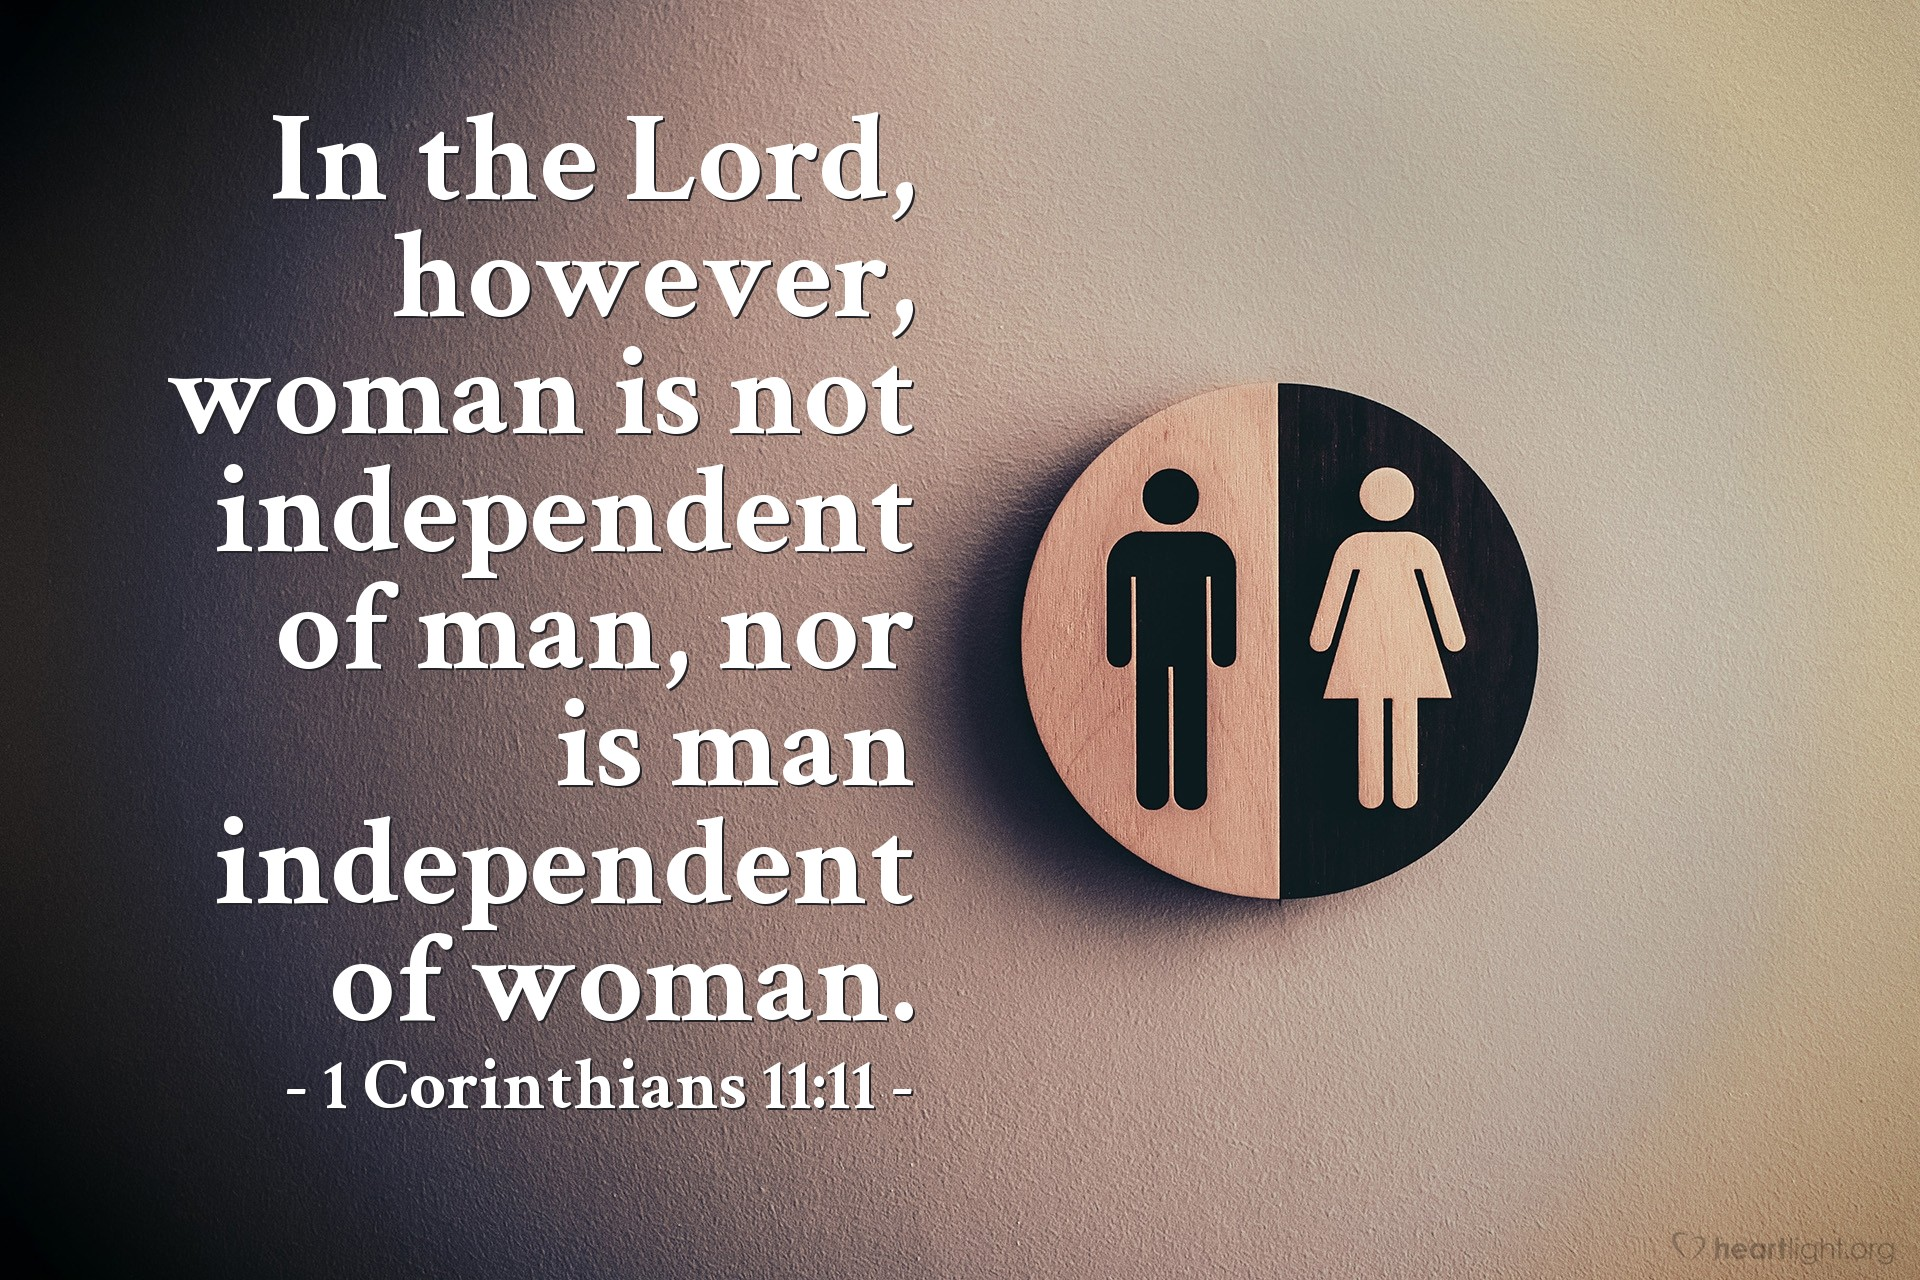 Illustration of 1 Corinthians 11:11 on Men